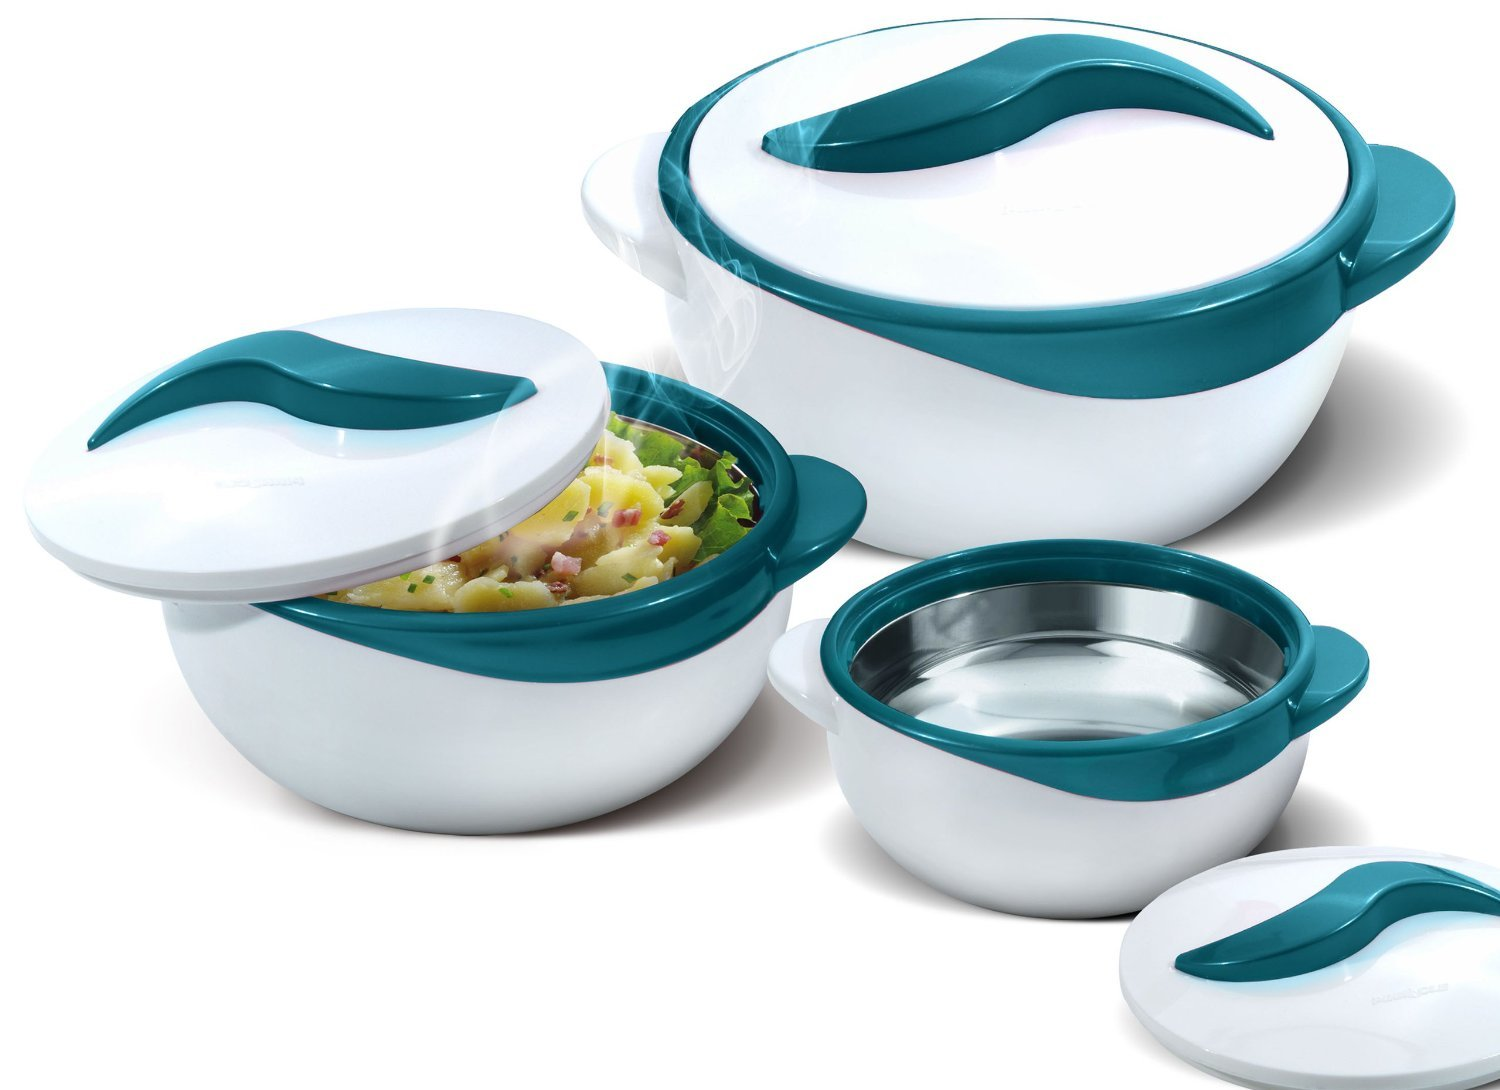 Pinnacle Serving Salad/ Soup Dish Bowl - Thermal Insulated Bowl with Lid -Great Bowl for Holiday, Dinner and Party ~ Set of 3 ~ Turquoise by Pinnacle Thermoware